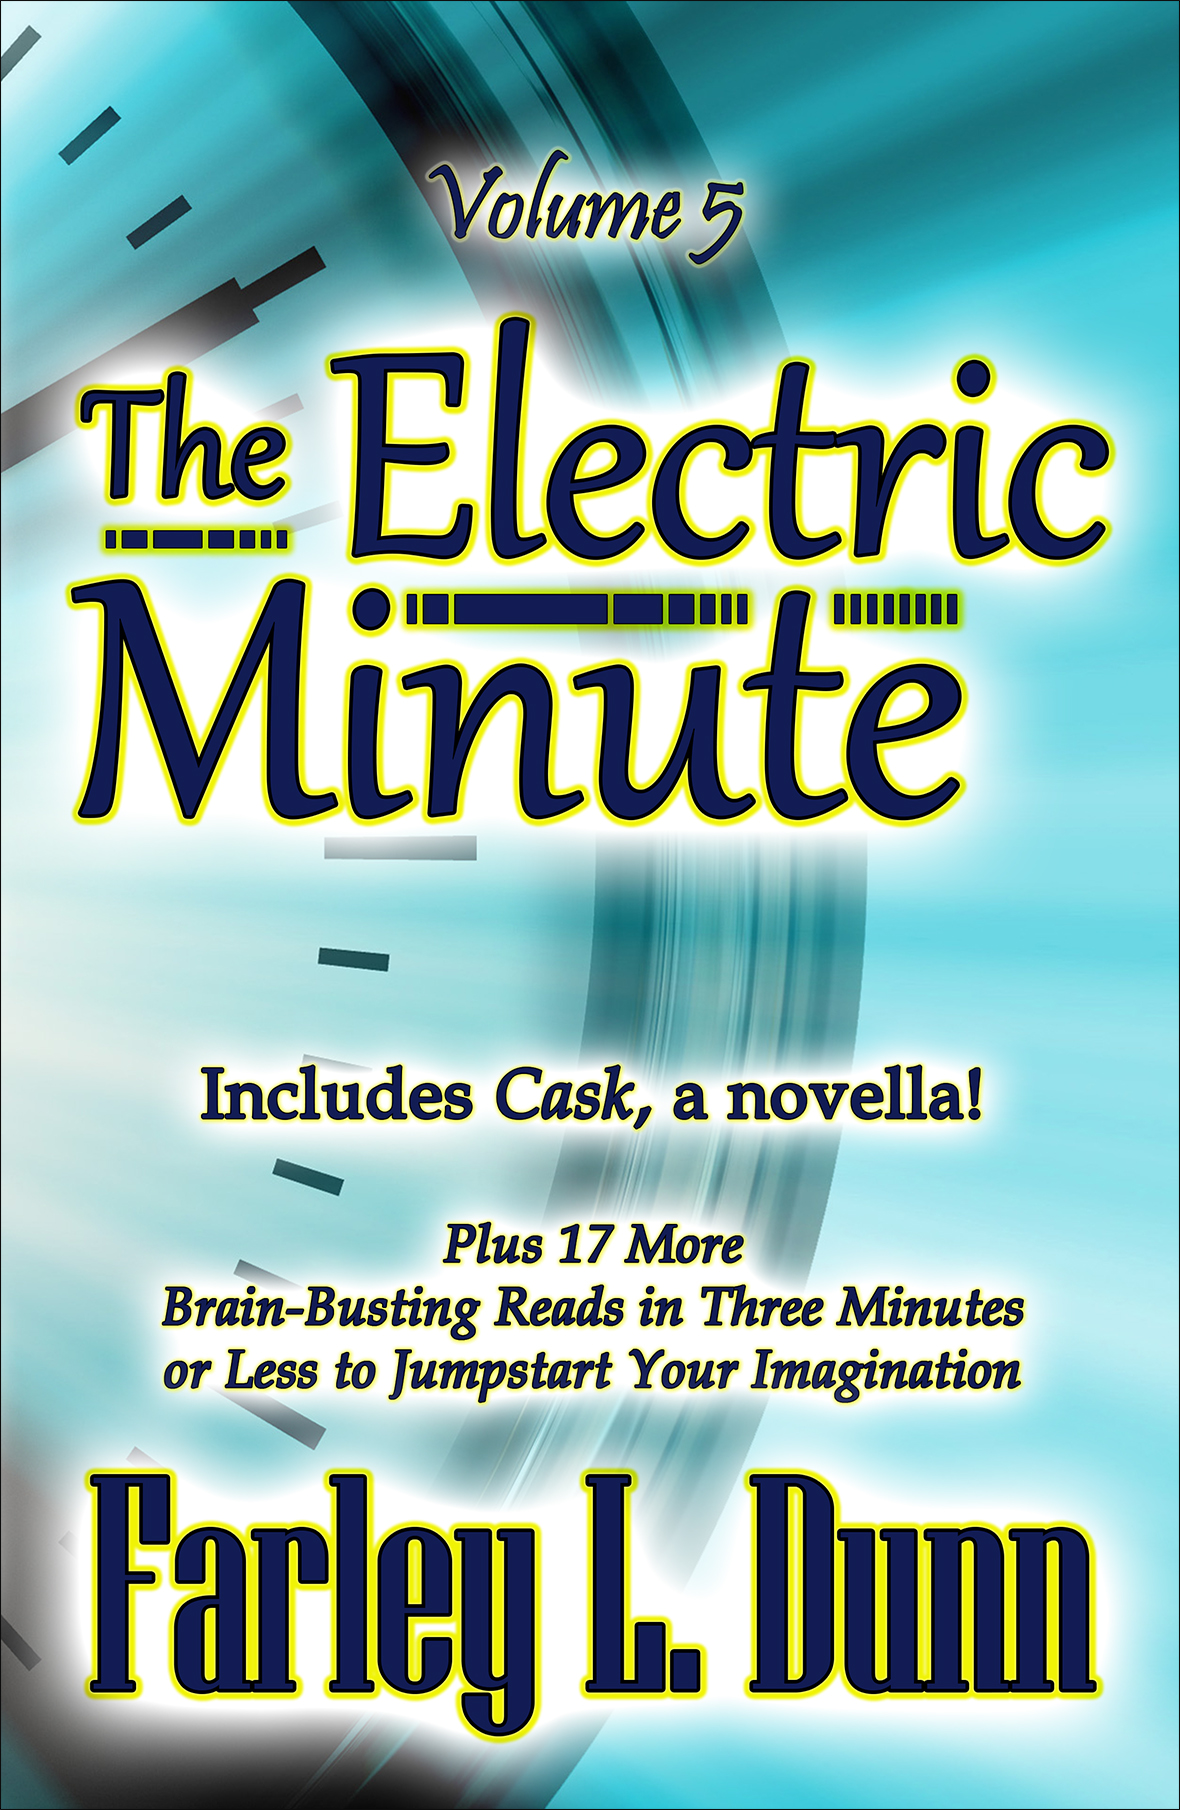 The Electric Minute Cover Vol 5 Front V1 reduced for web insertion